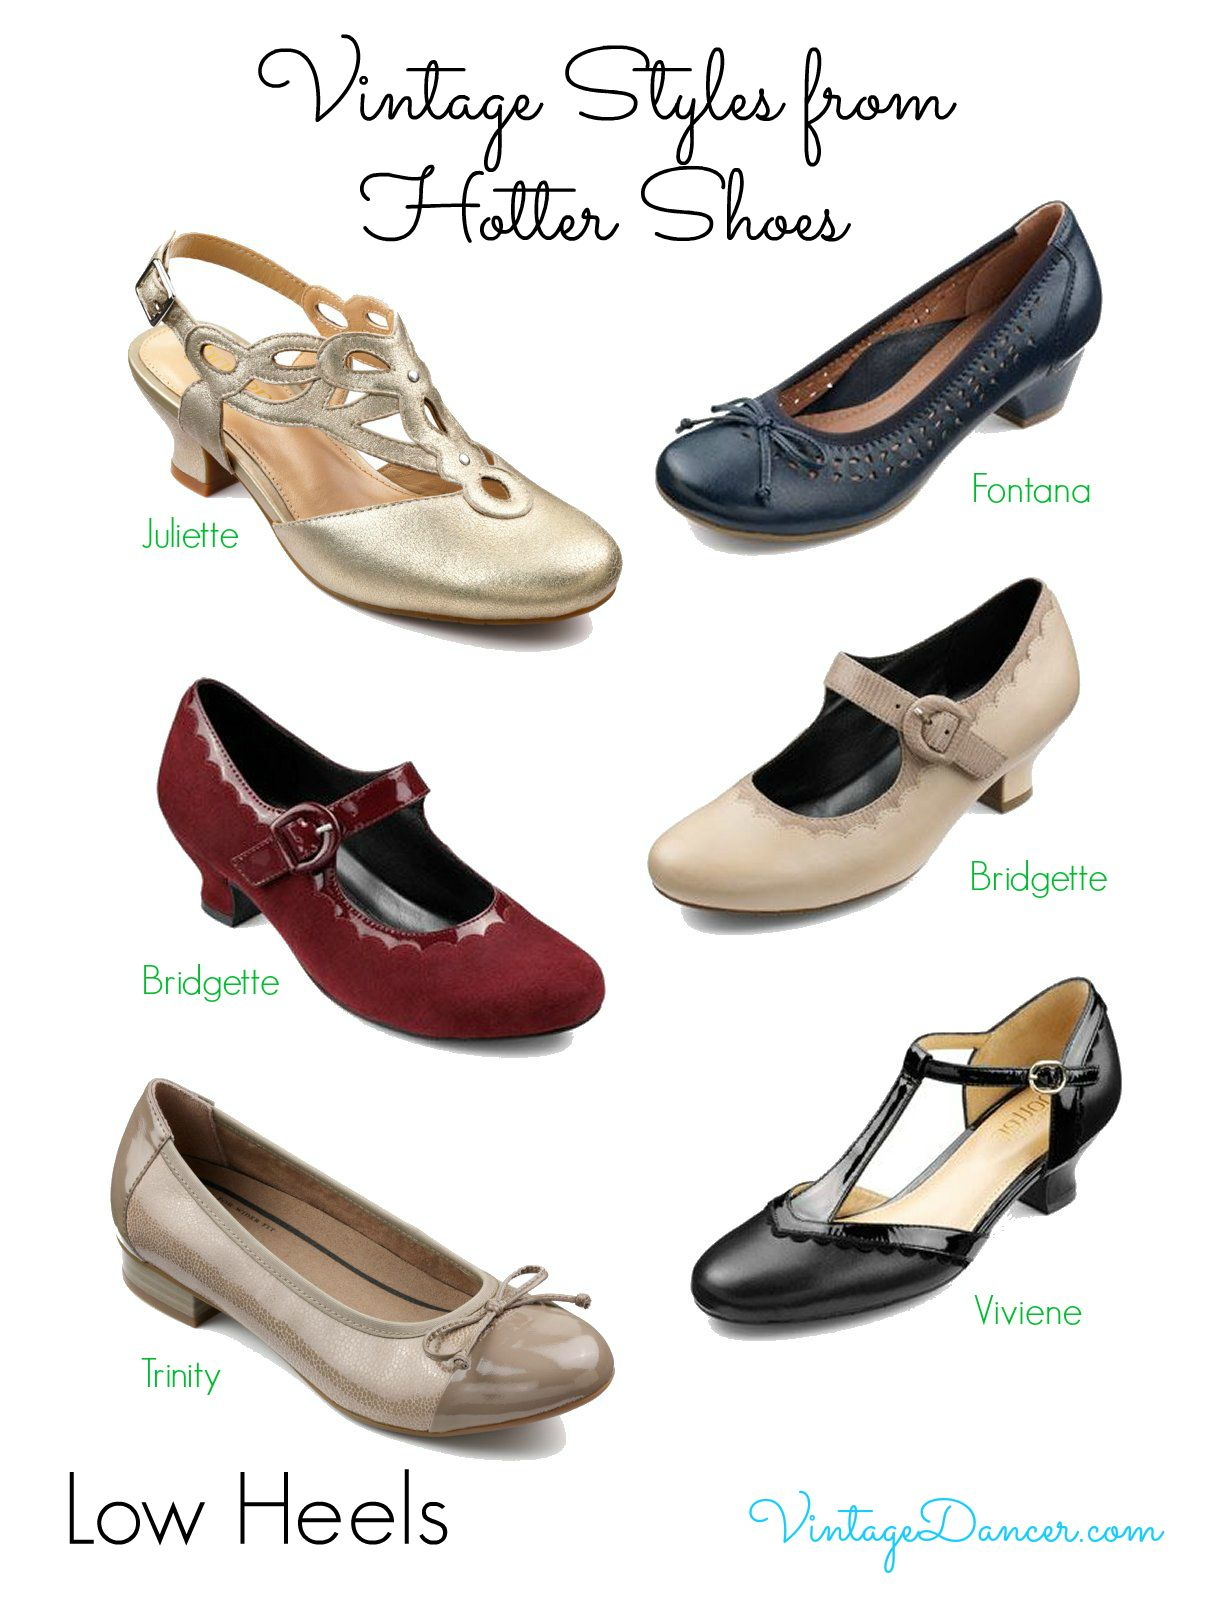 22480e30088f Vintage style Hotter Shoes. These styles could easily suit eras from the  1920s up to the 1960s. Shop them at VintageDancer.com